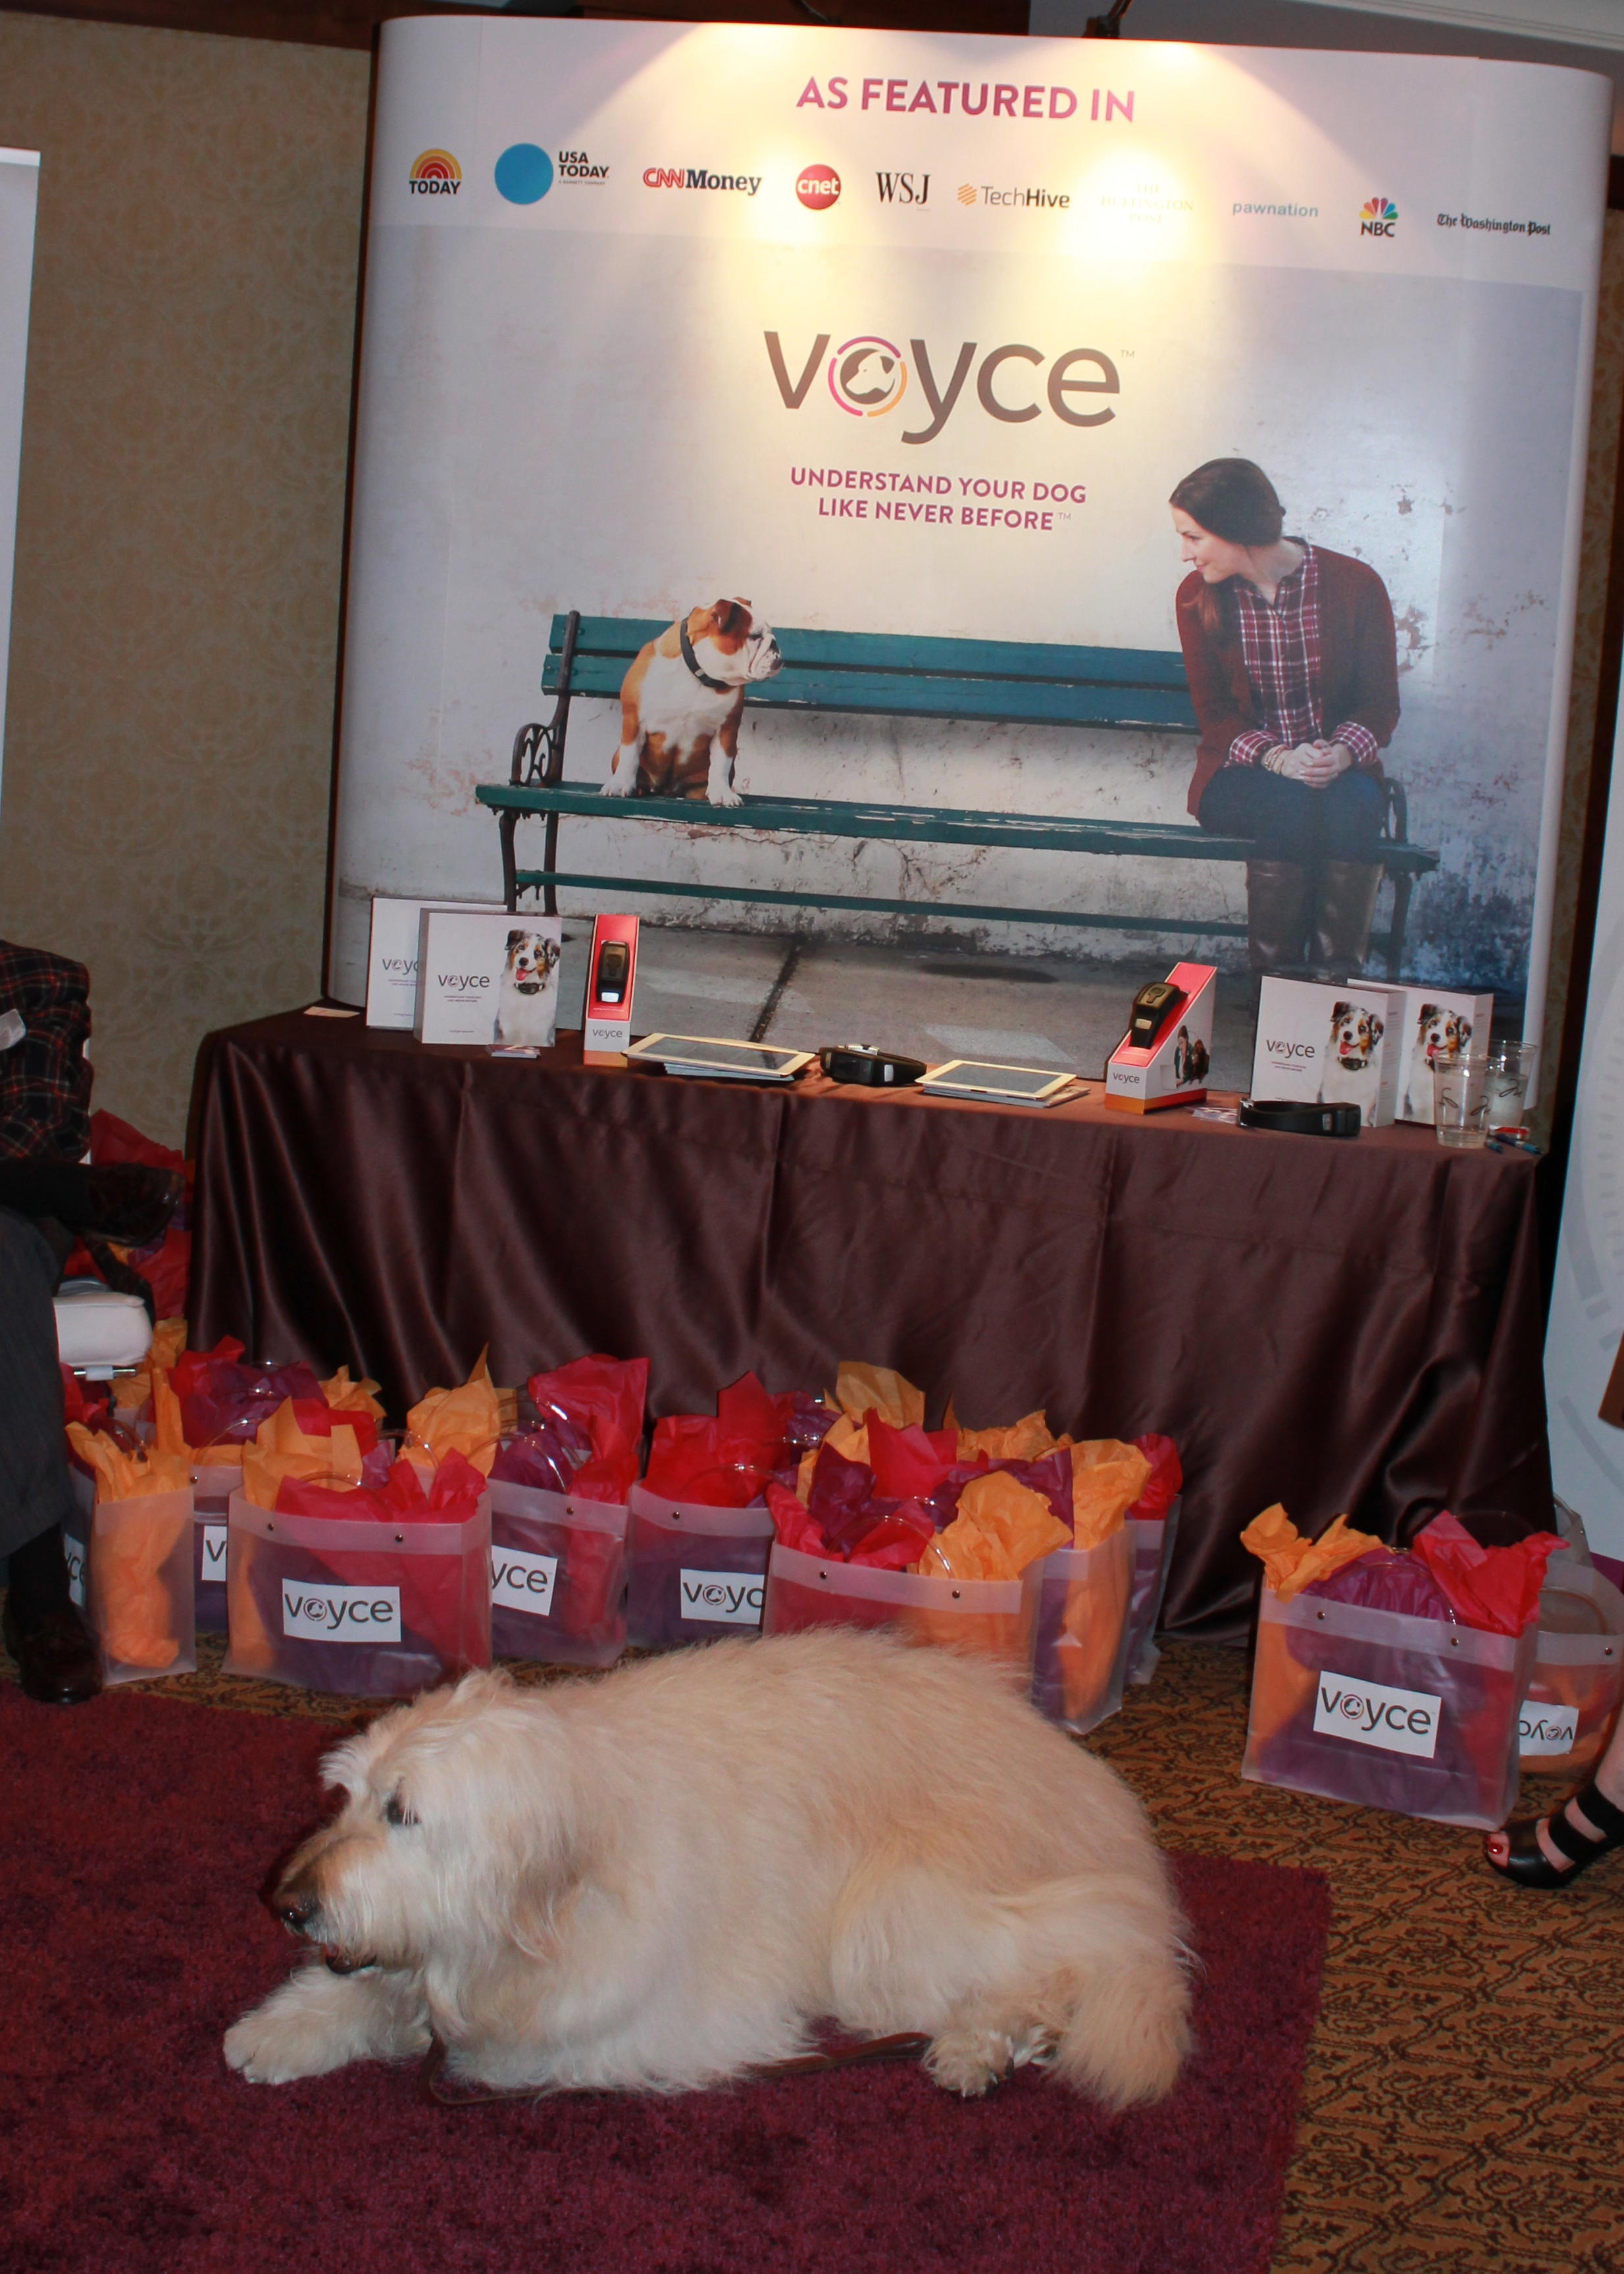 Another adorable dog hawking Voyce fitness-tracking dog collars. Sadly, not included with the gift bags.